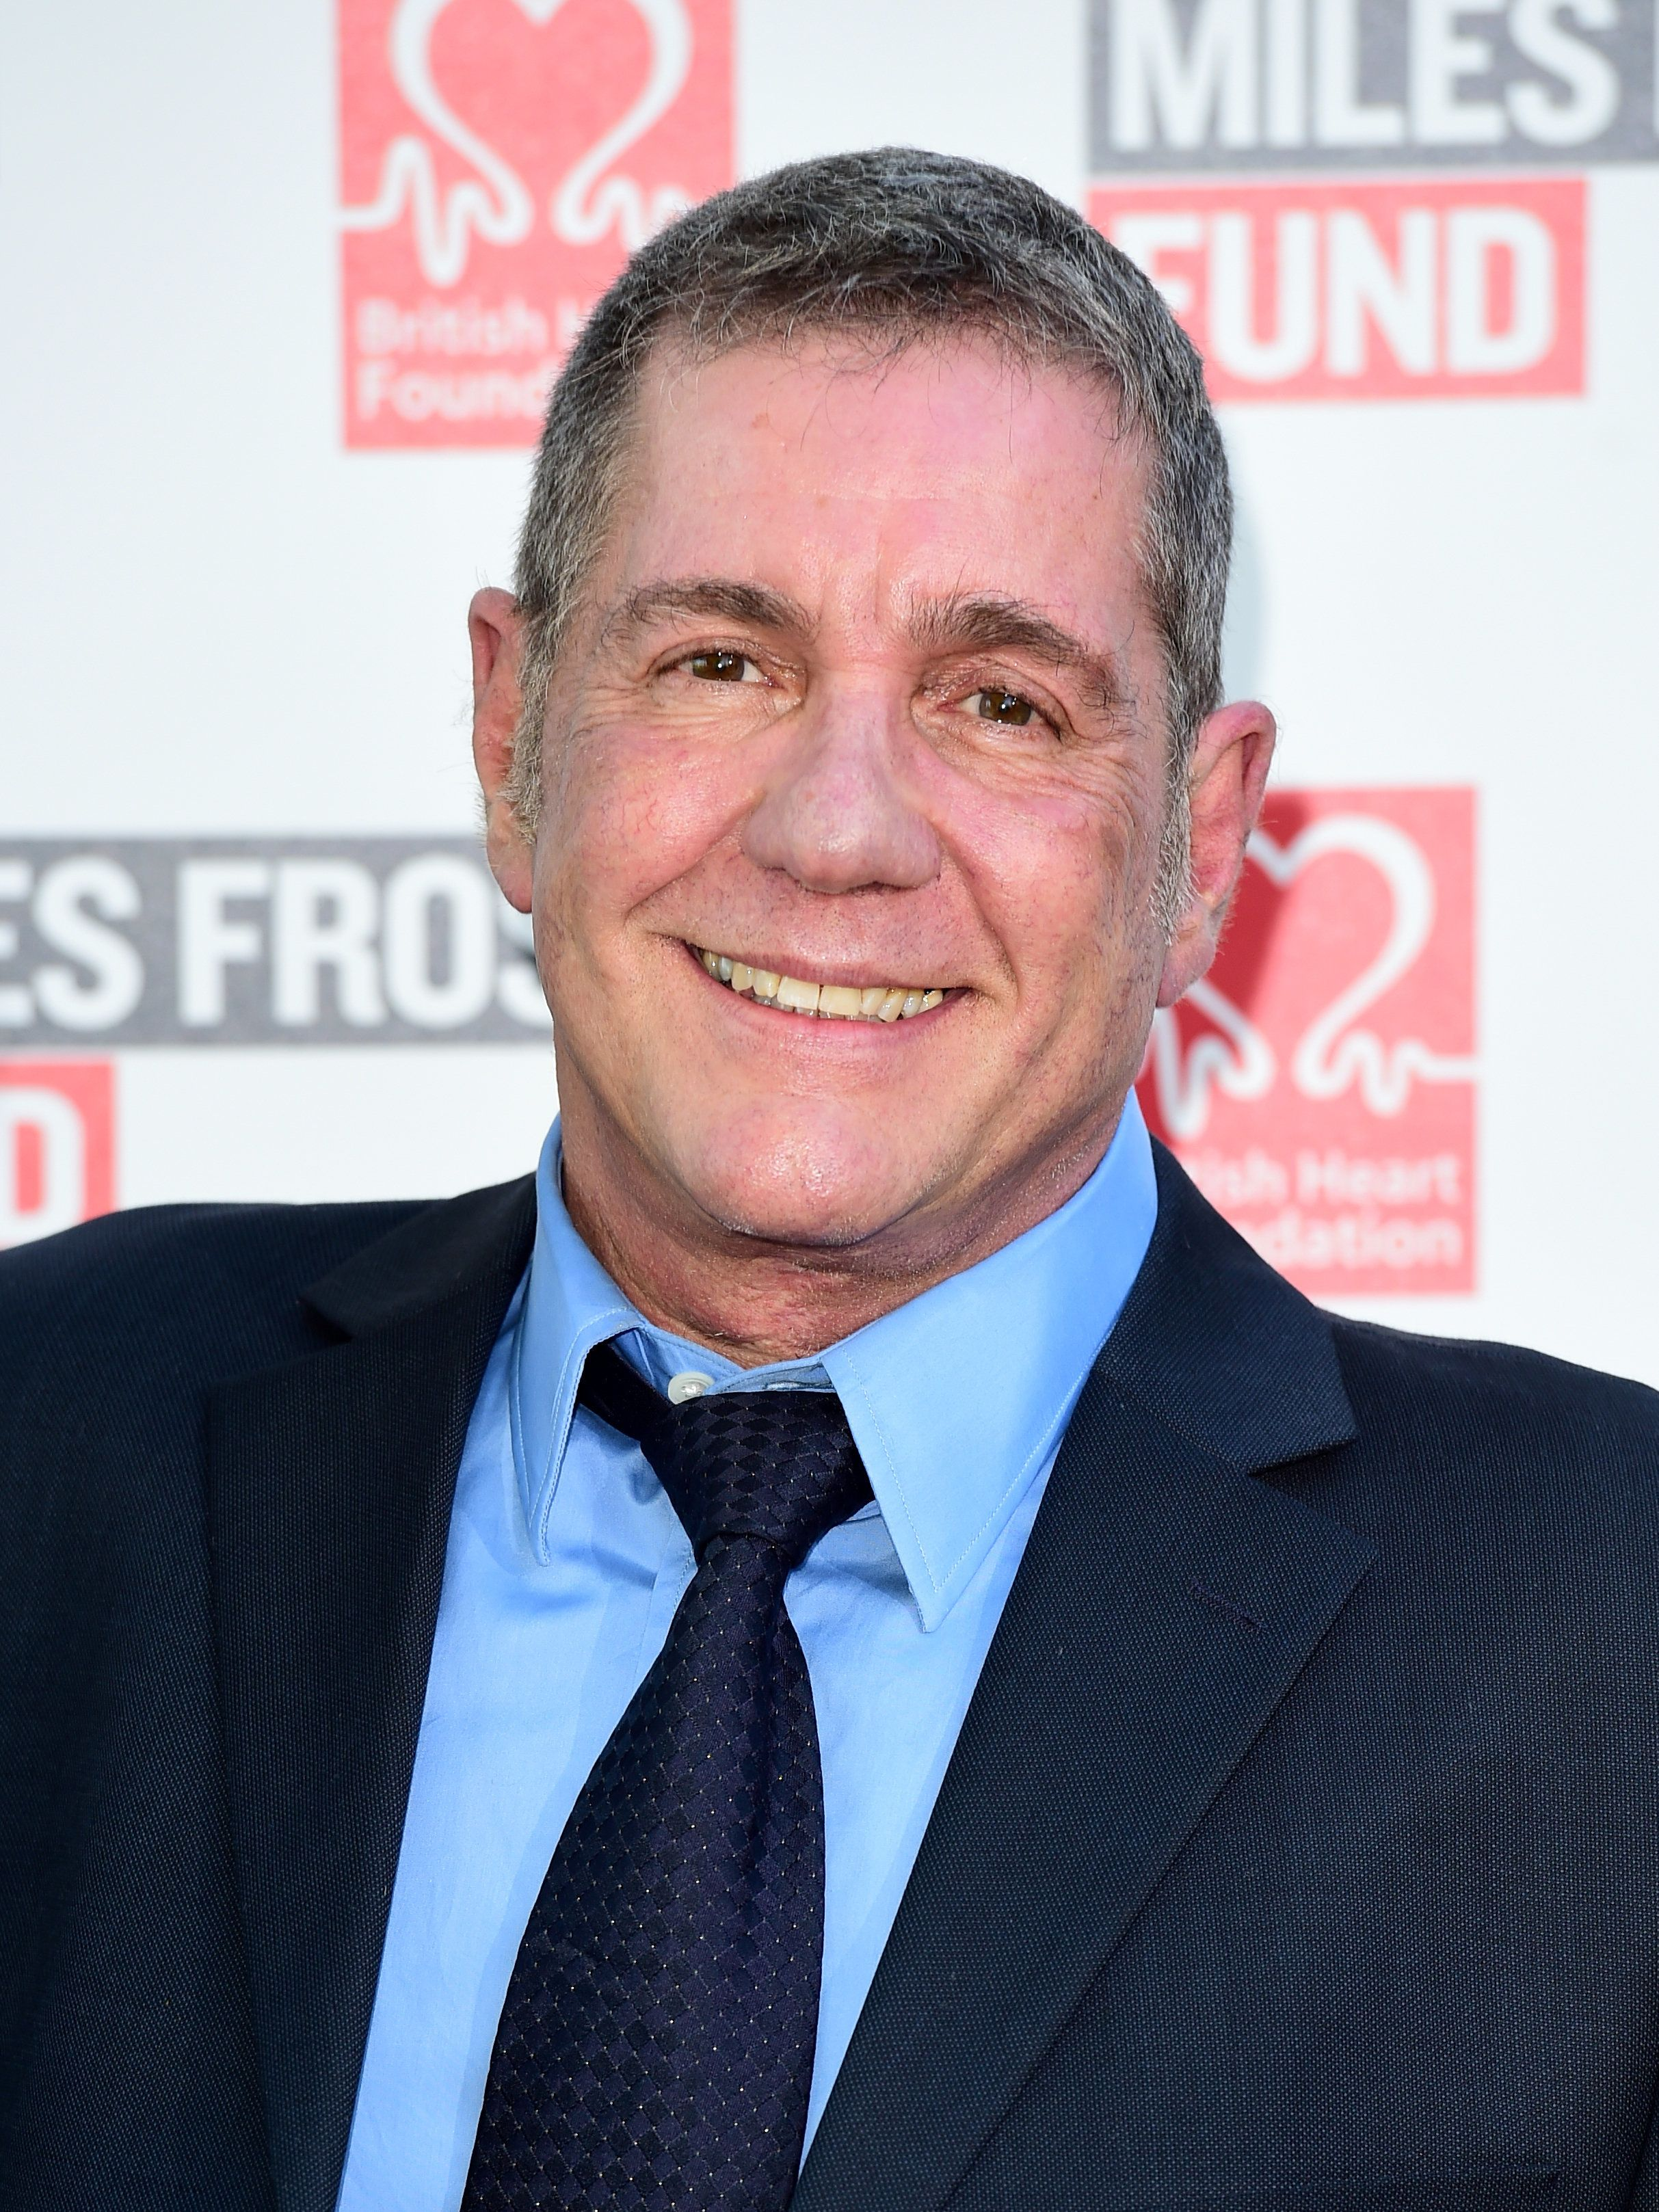 Dale Winton's Showbiz Friends Share Their Memories Of The Presenter